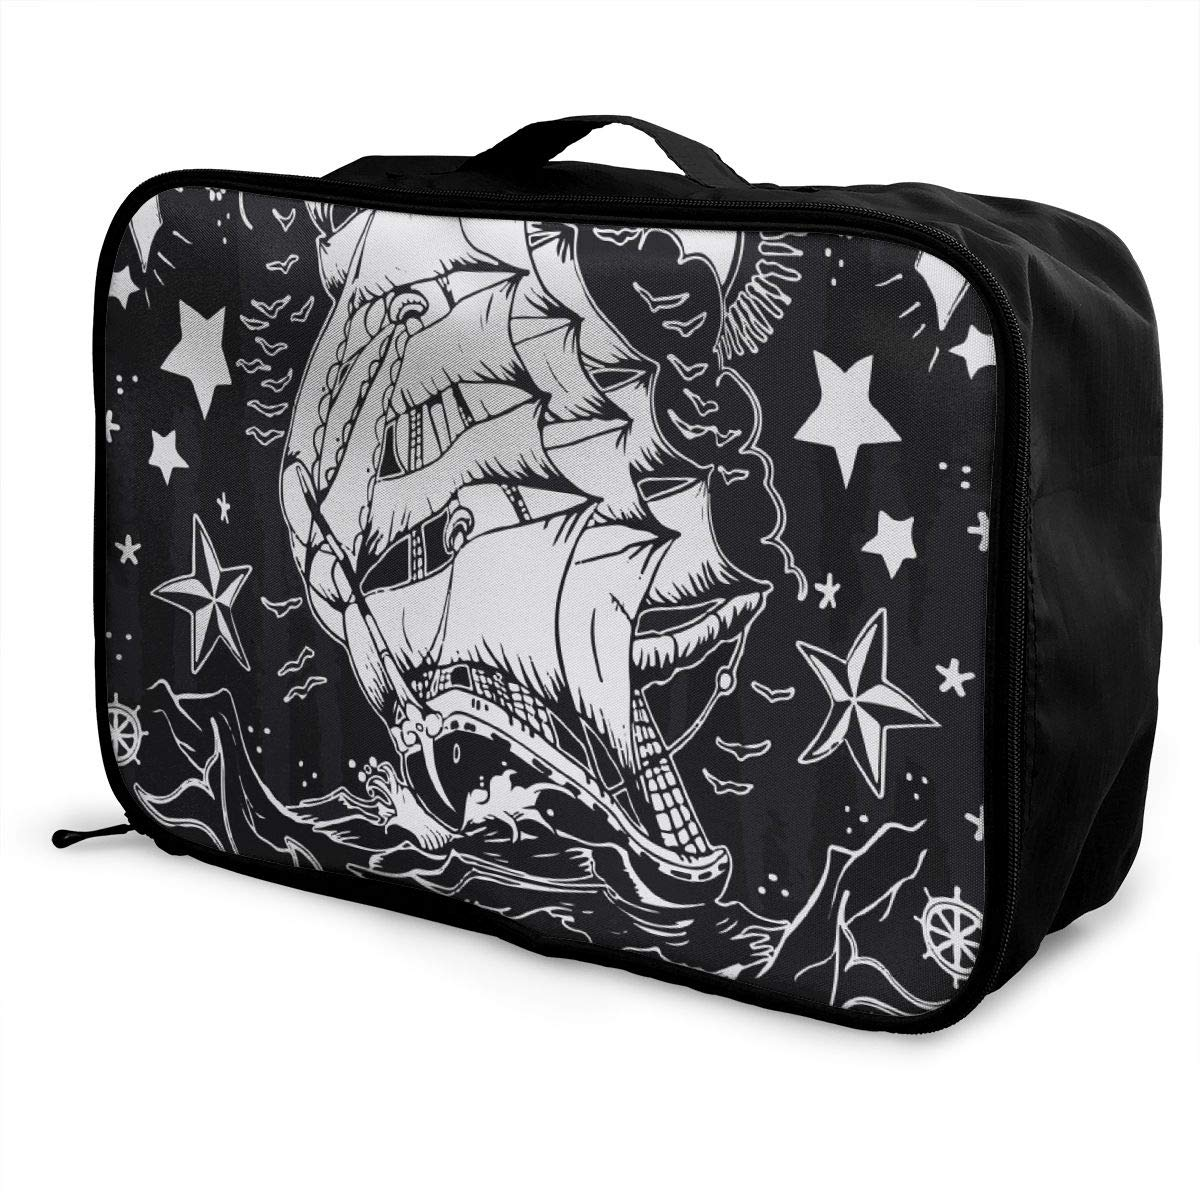 Sailboat With Anchor In Night Sky Travel Lightweight Waterproof Foldable Storage Carry Luggage Duffle Tote Bag Large Capacity In Trolley Handle Bags 6x11x15 Inch